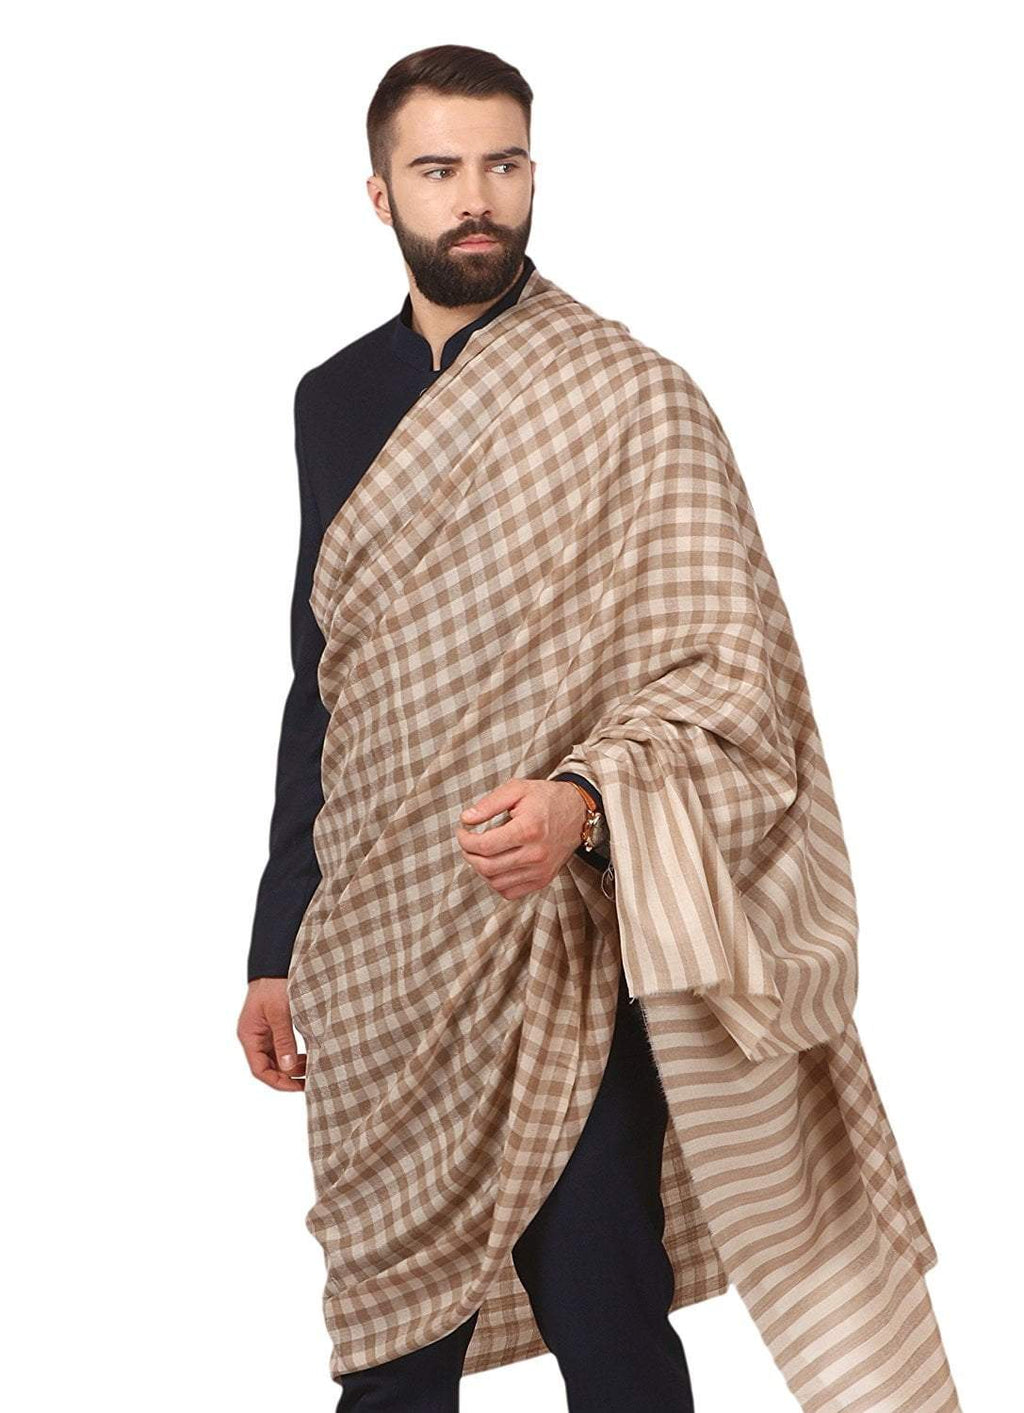 Pashtush Store Pashtush Mens Woven Check Design Shawl, Australian Merino Wool Light Weight, Soft Handfeel